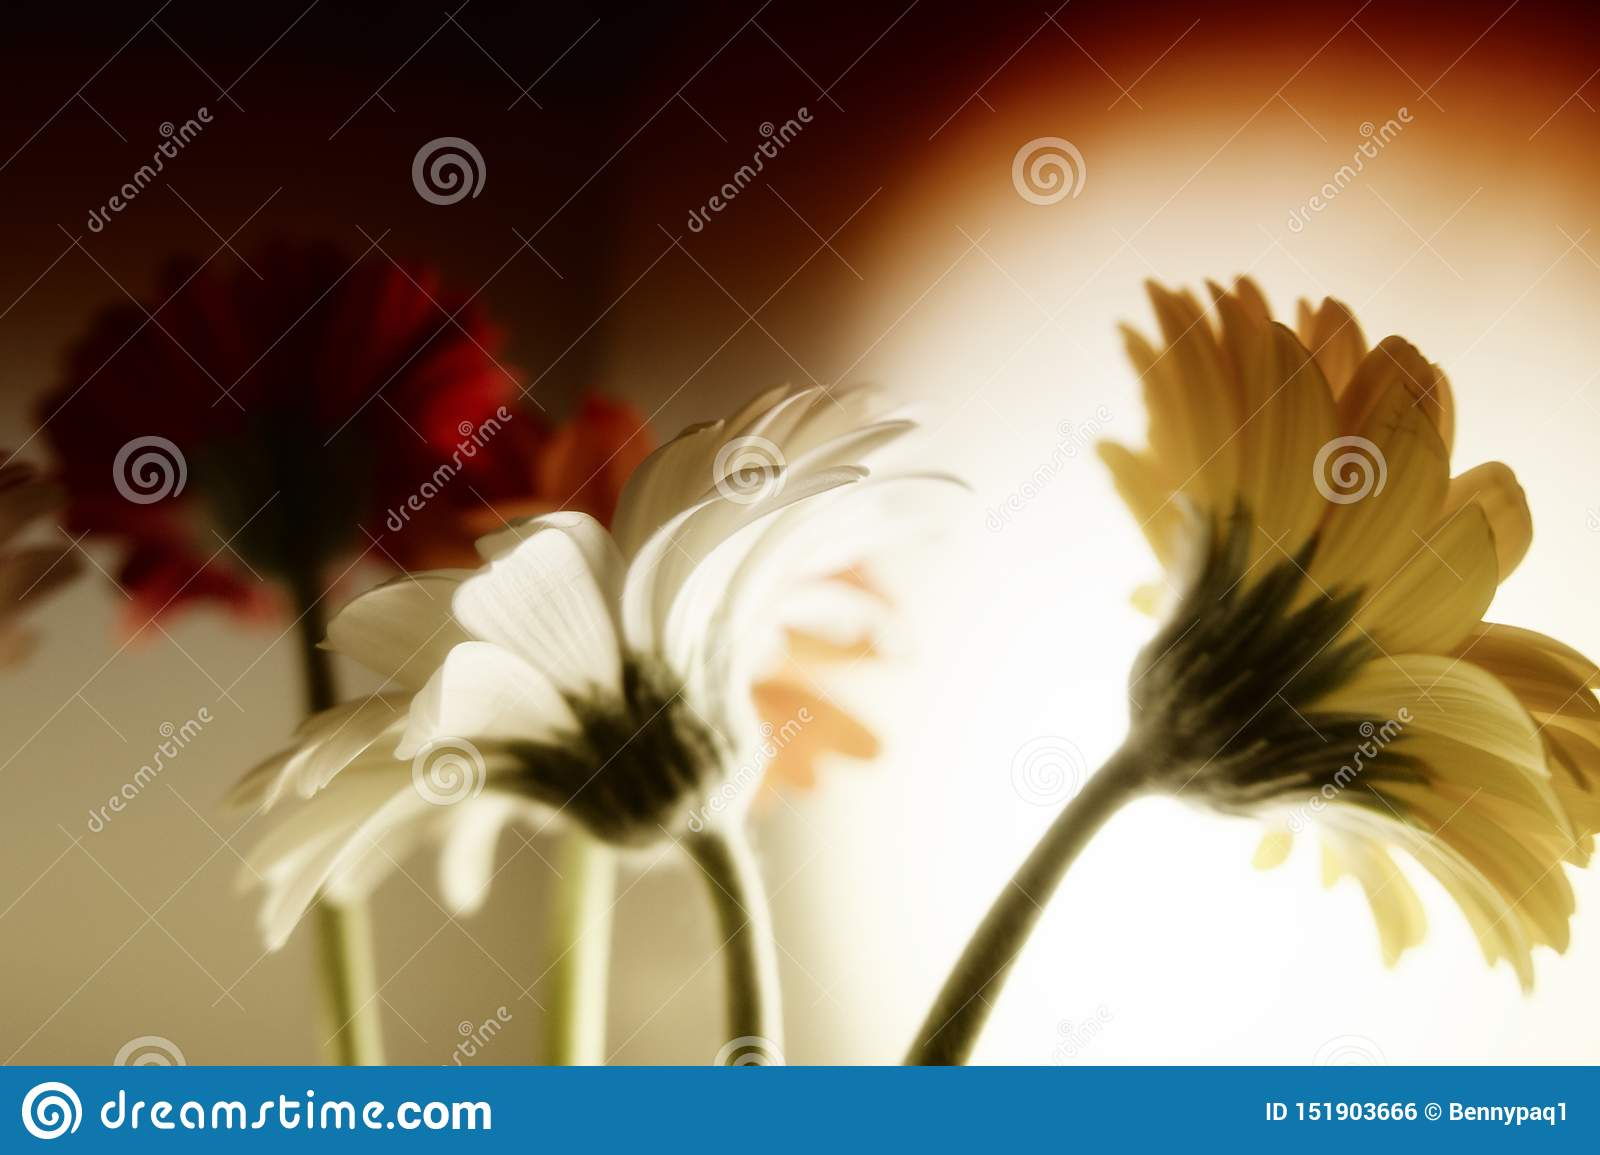 Colorful Gerbera Daisies In A Vase Stock Photo - Image of ...